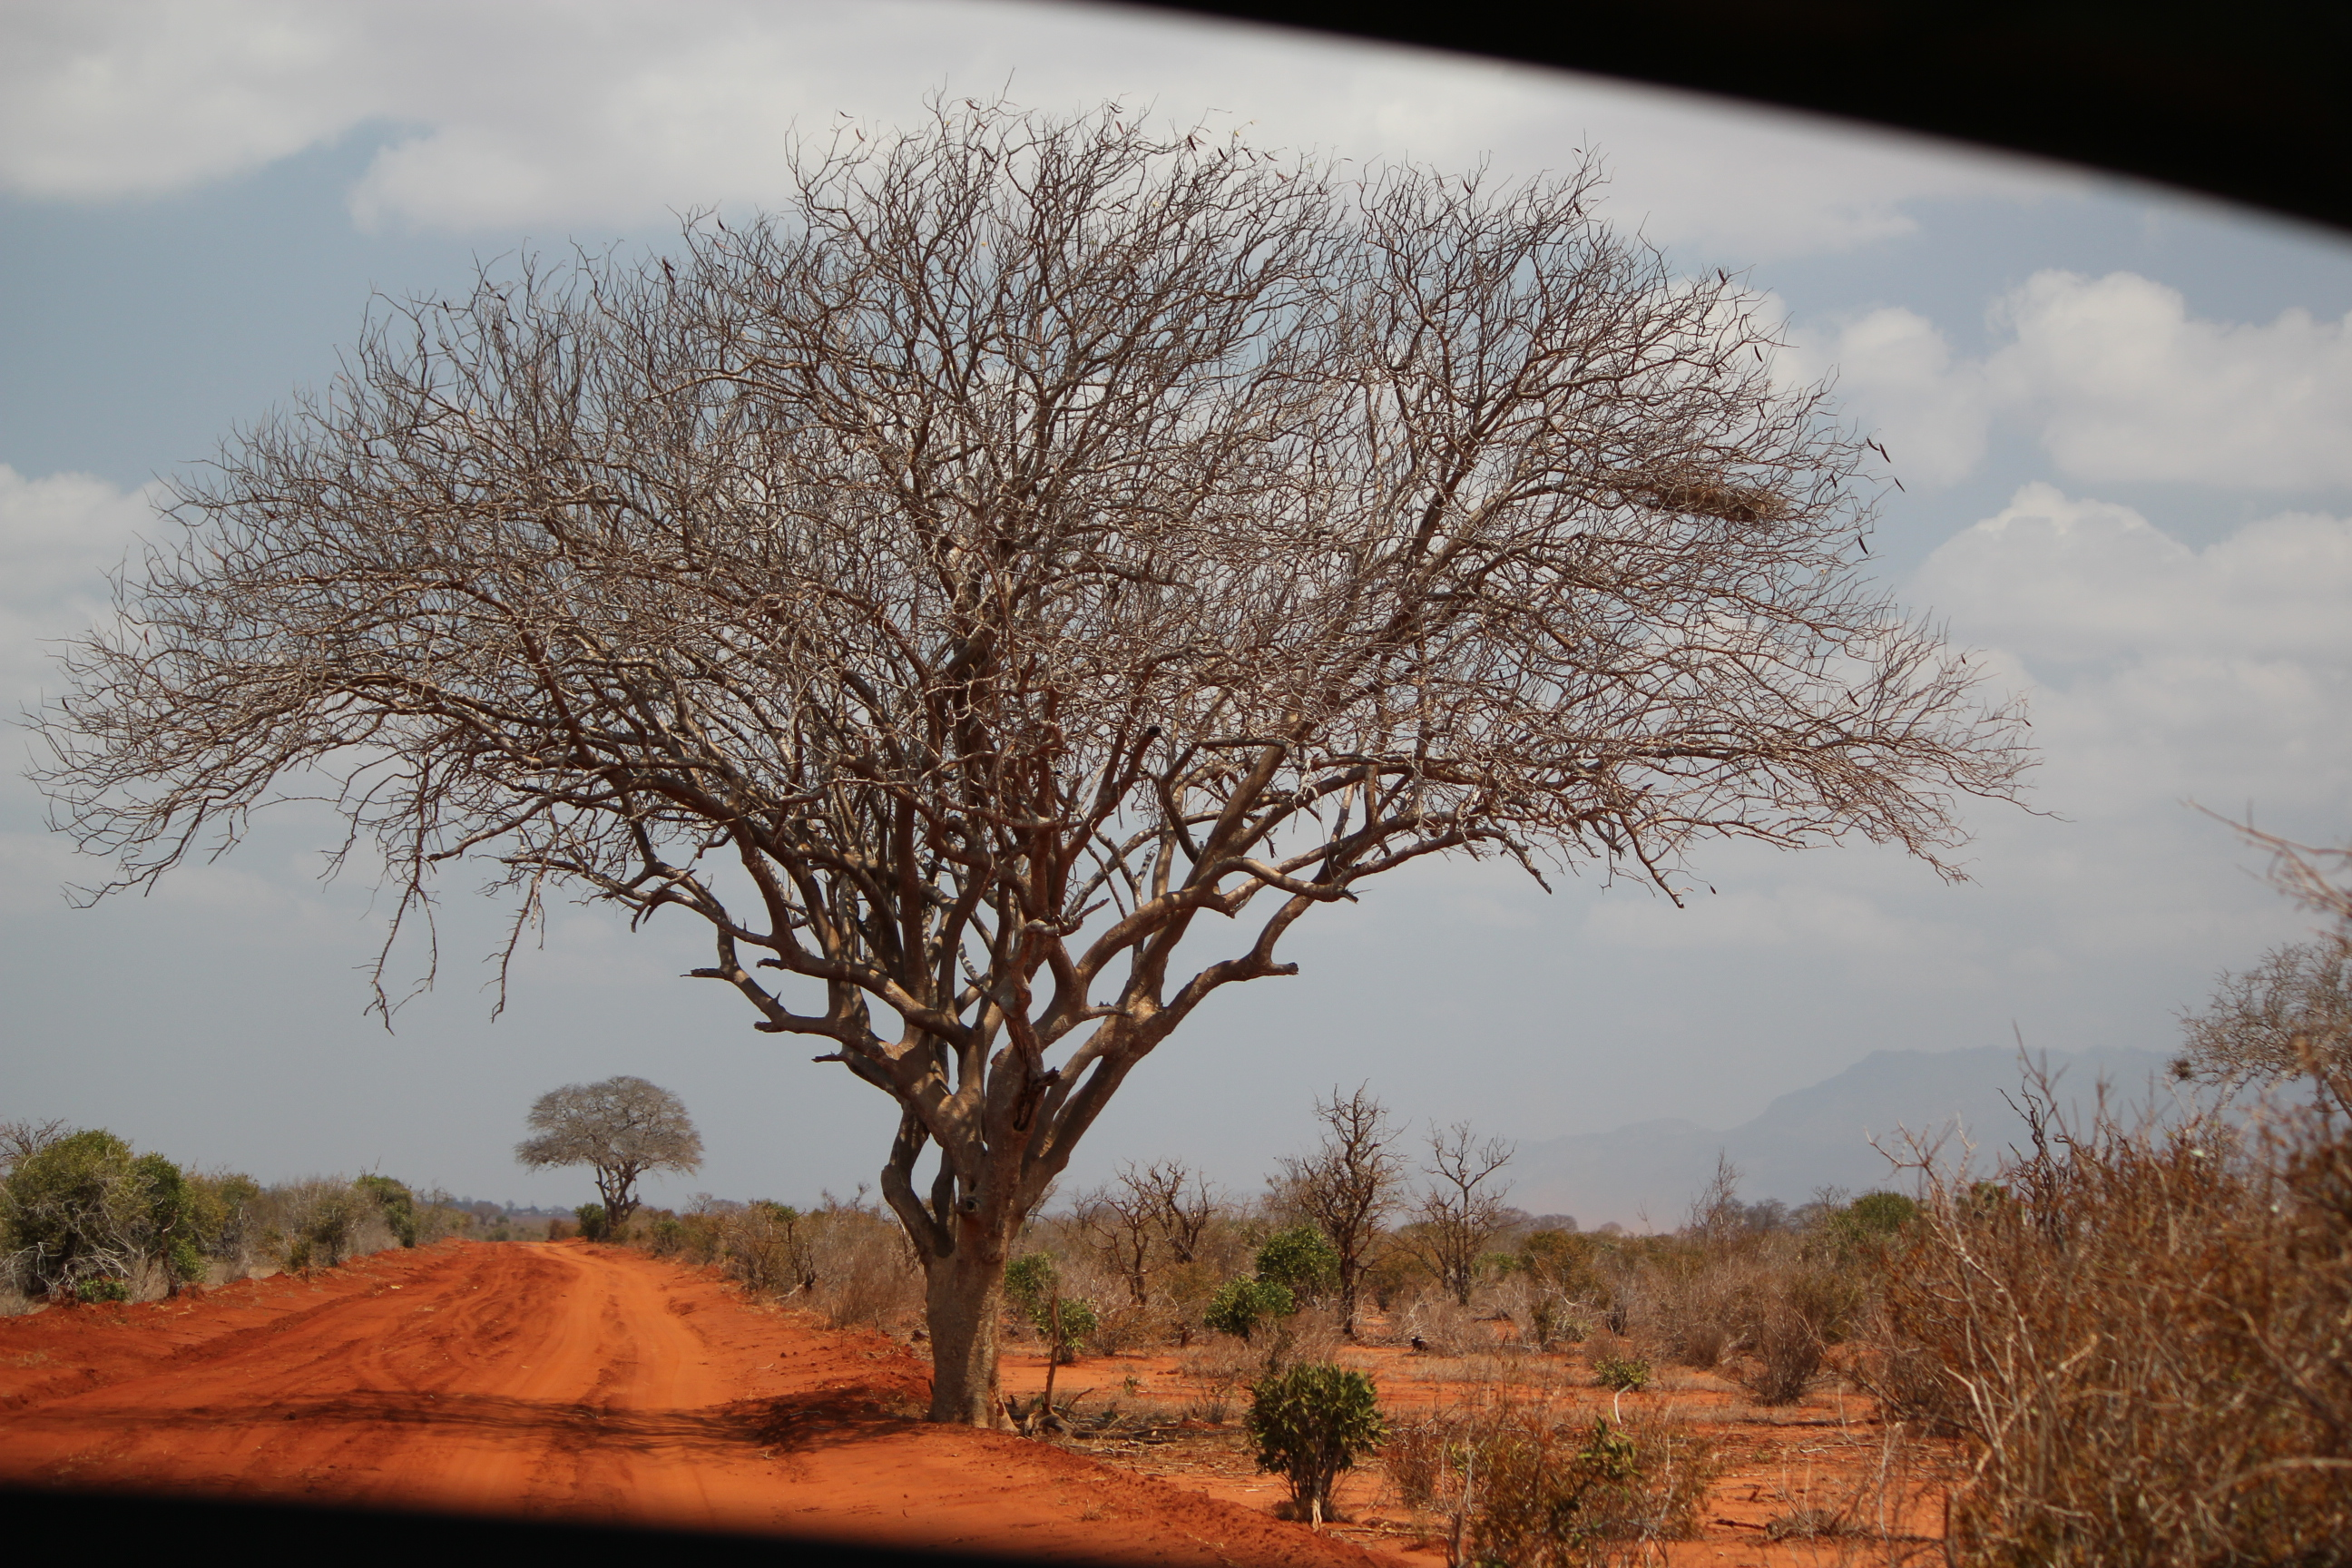 Picturesque; East Tsavo National Park, Kenya; 2011